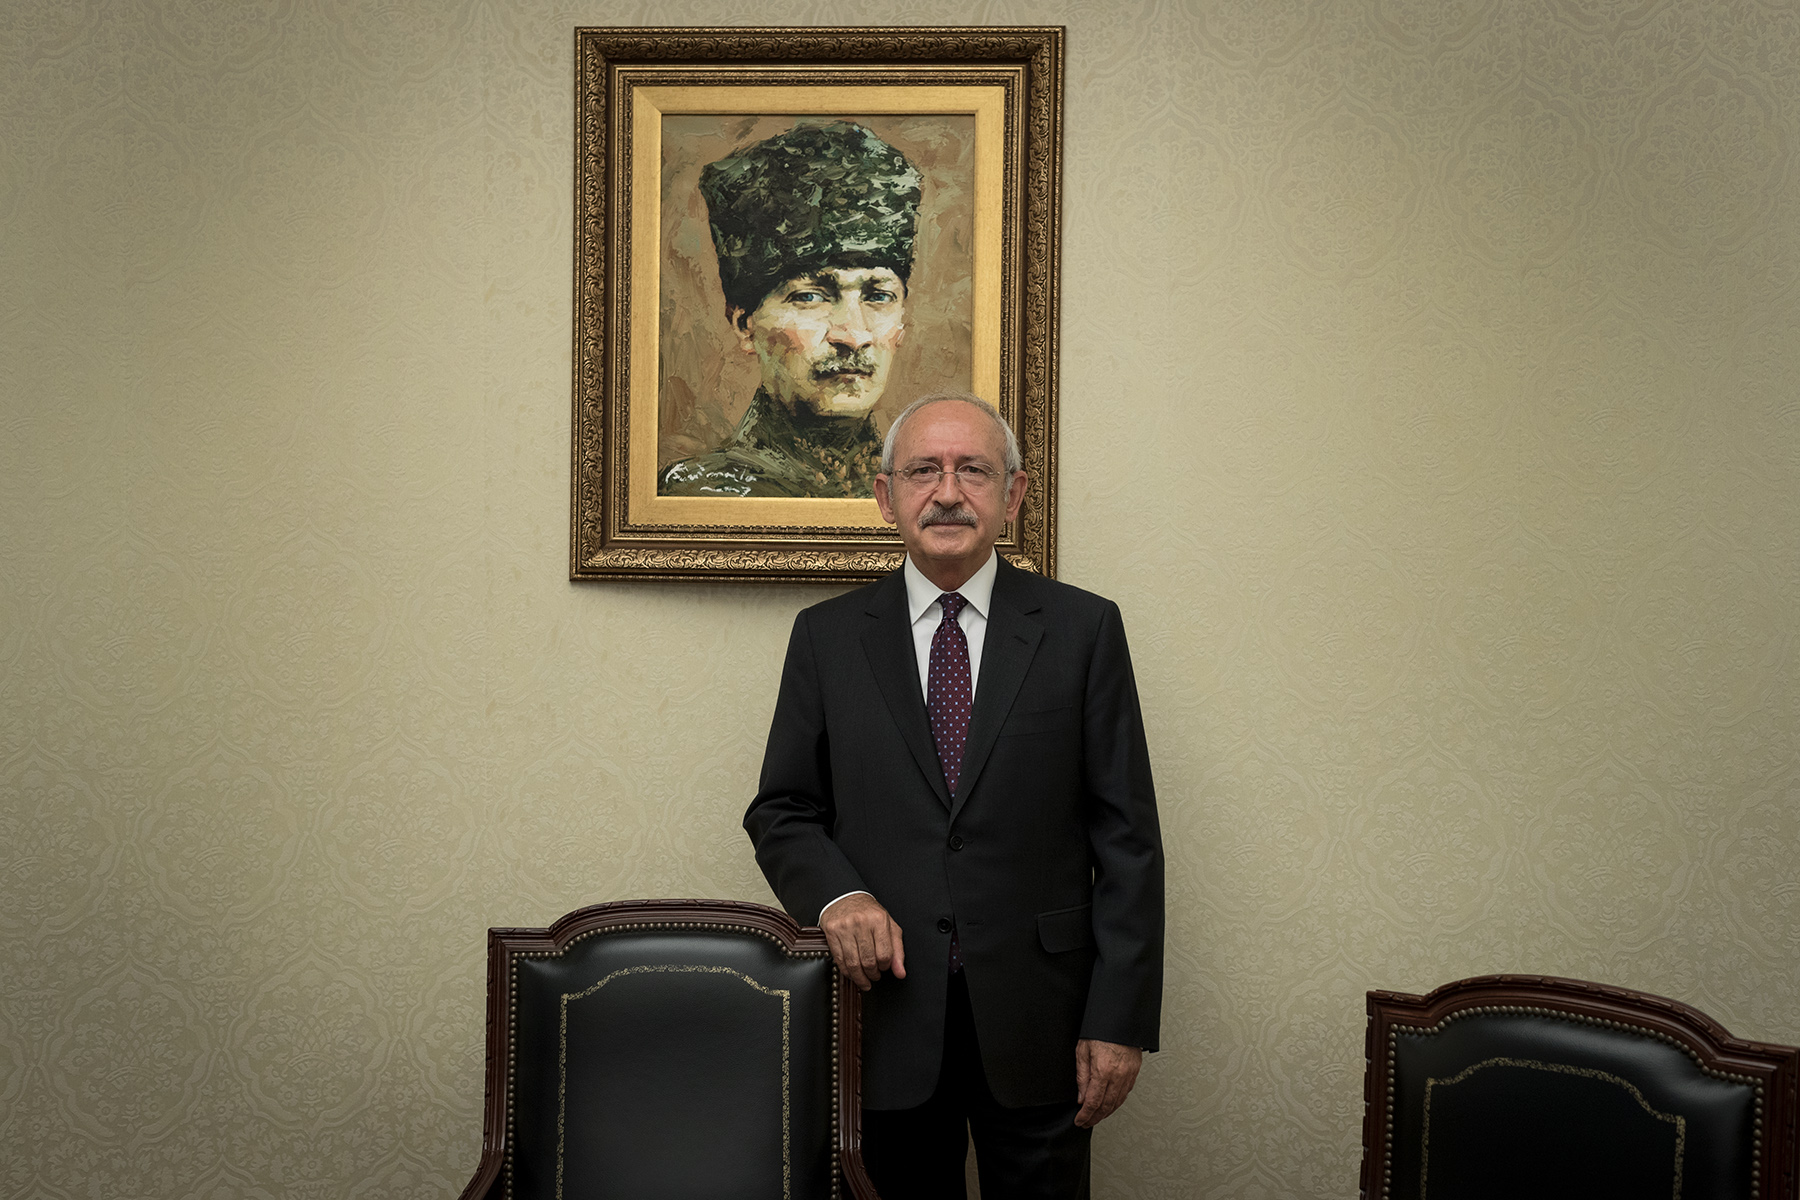 Turkey, 2017 - Kemal Kılıçdaroğlu, president of the Republican People's Party (CHP), founded by Atatürk. Main political opponent to President Recep Tayyip Erdoğan.